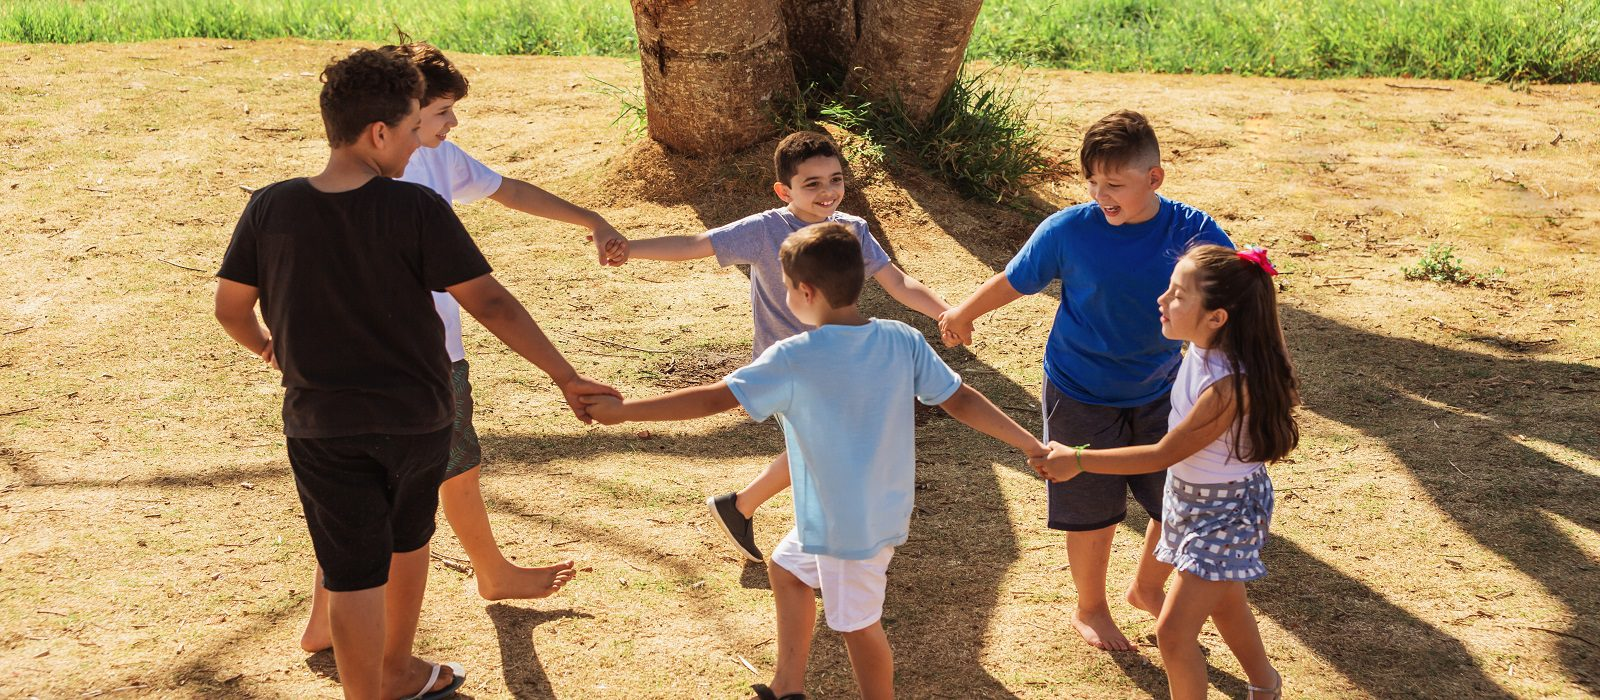 group of kids playing and having fun